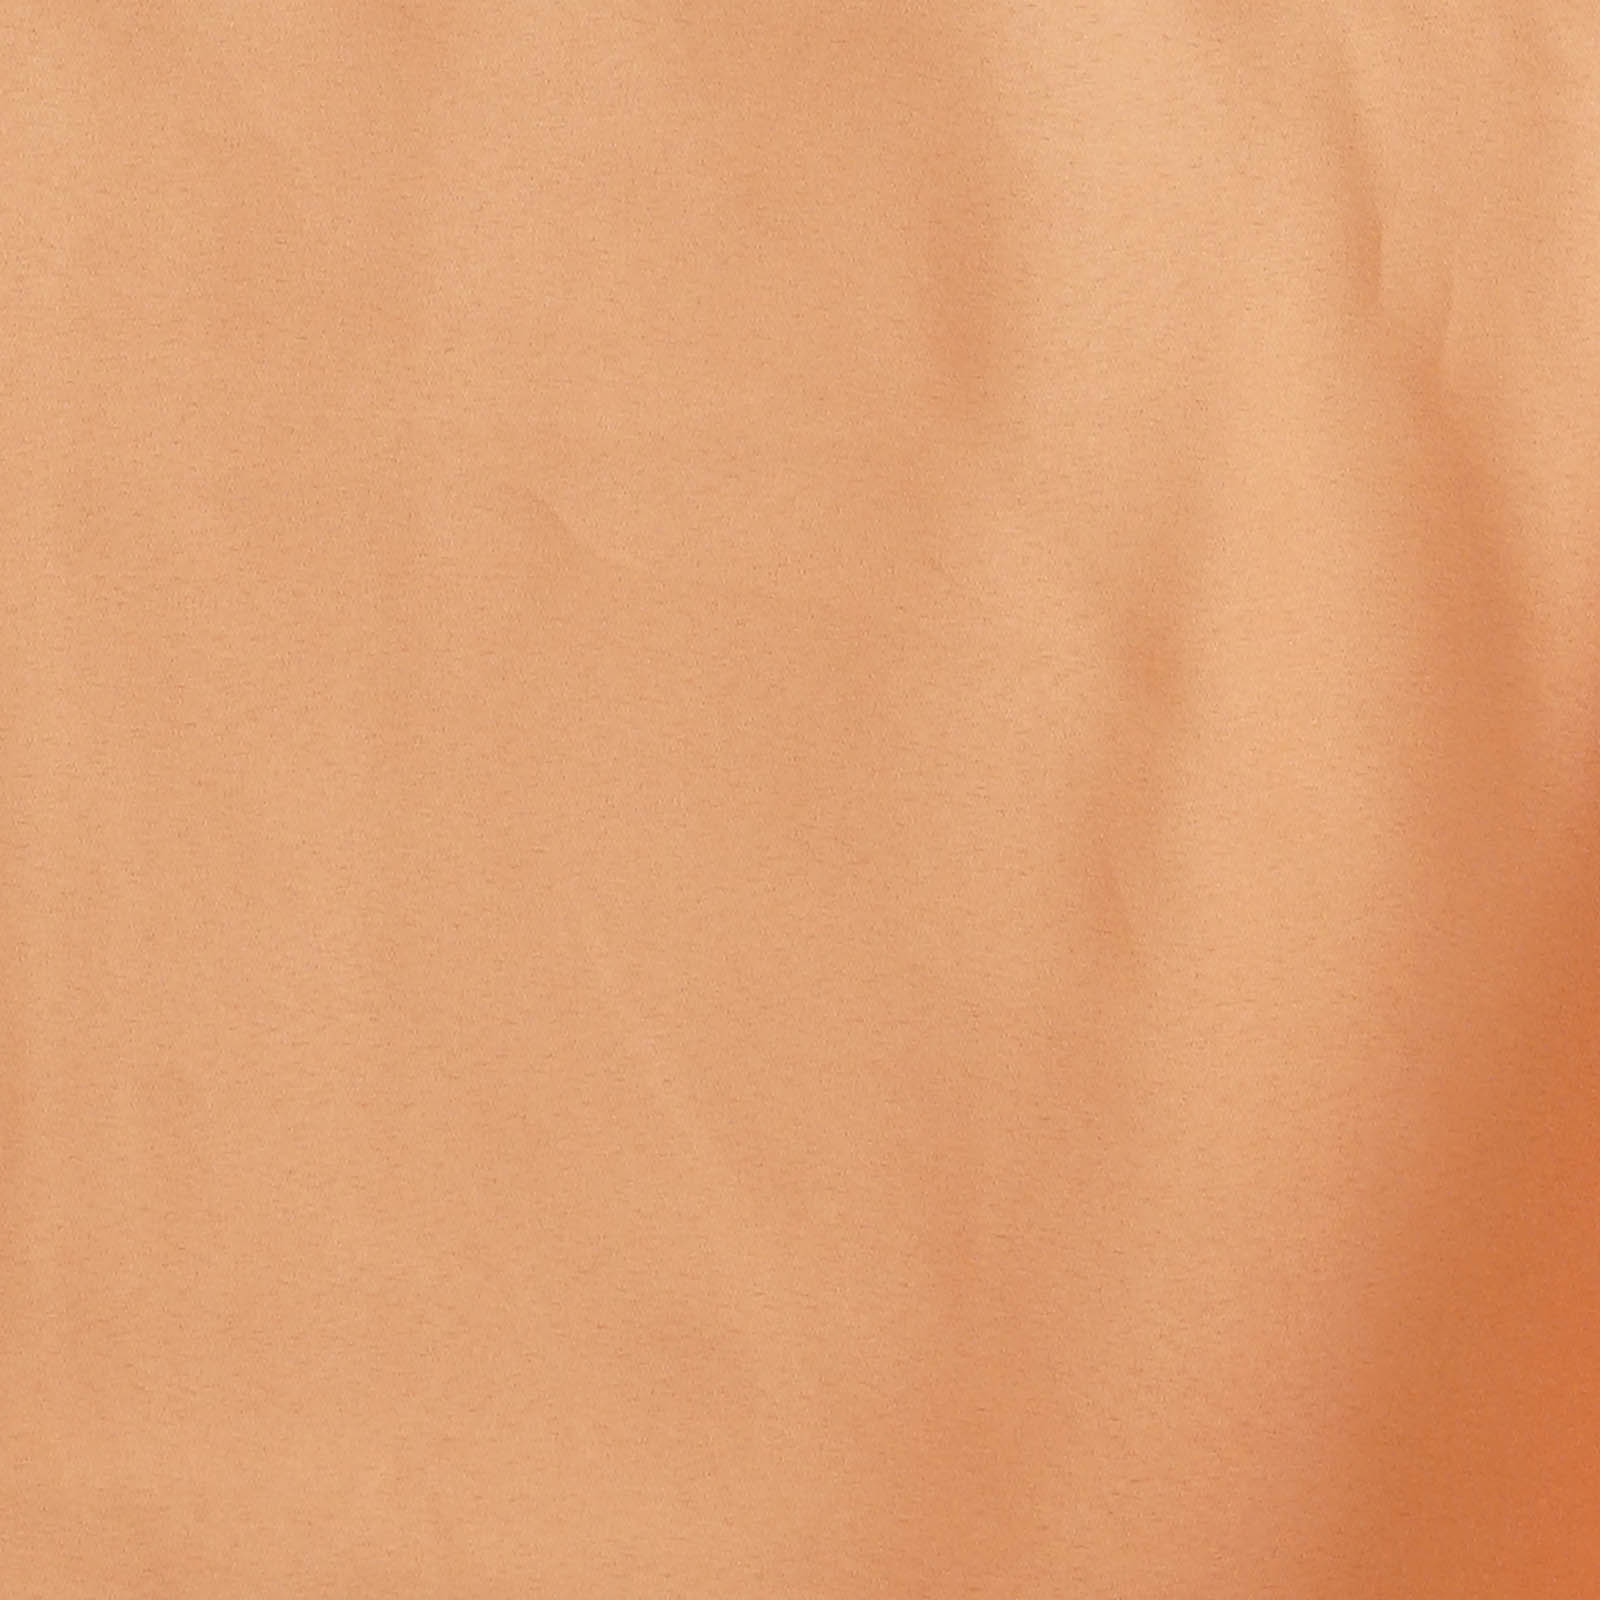 90x132-034-Polyester-Rectangle-Tablecloths-For-Wedding-Party-Banquet-Events thumbnail 32